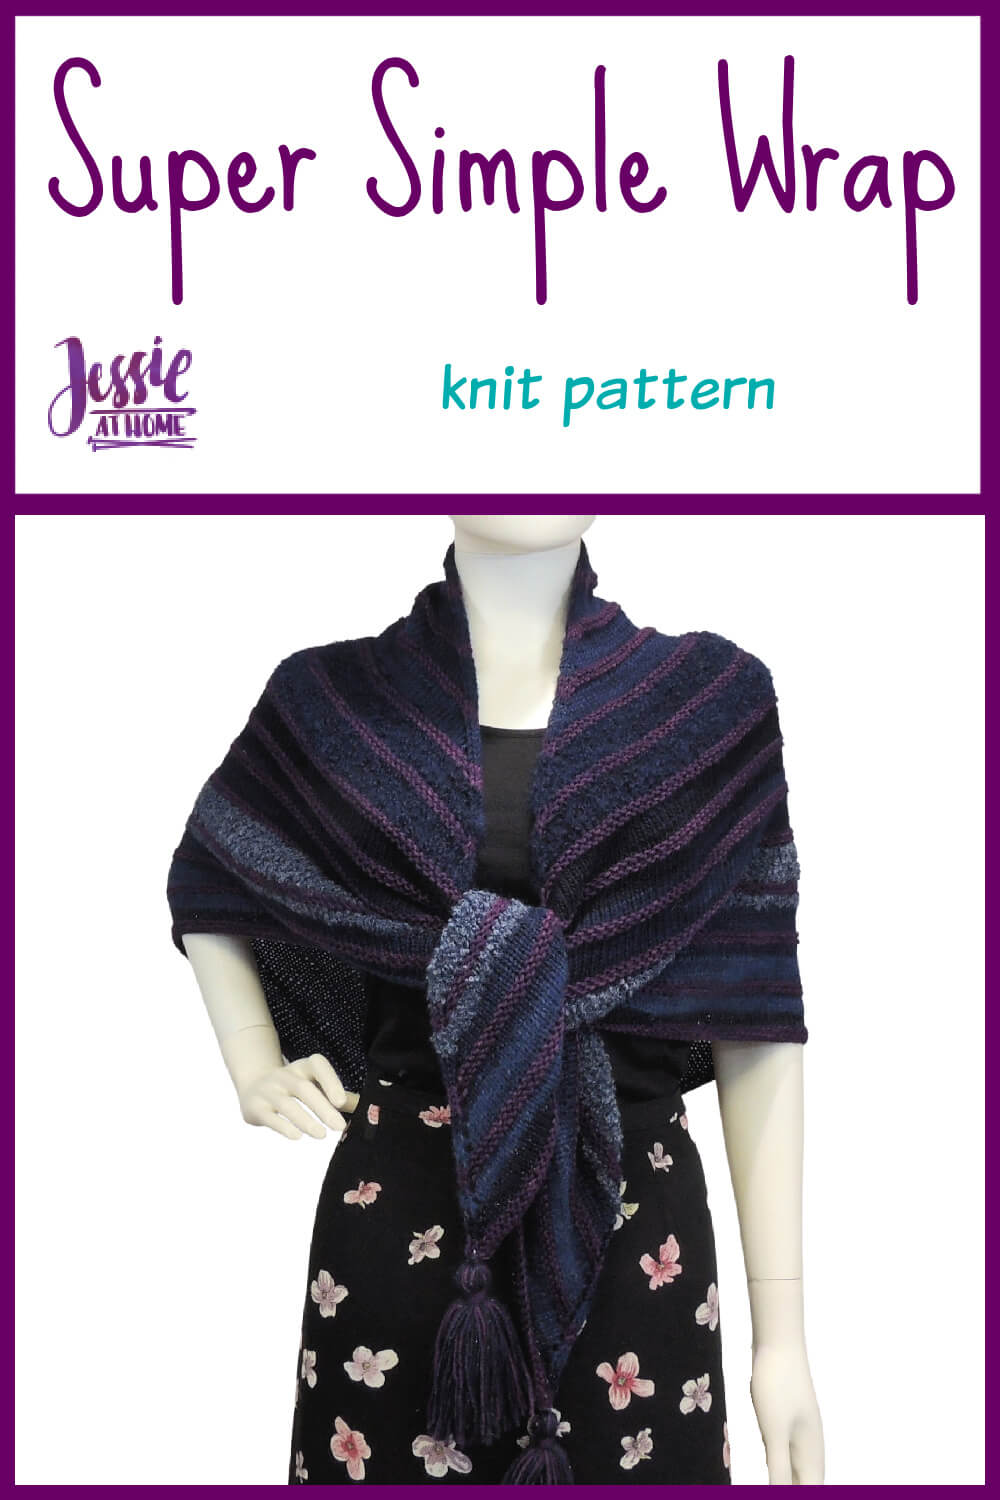 Super Simple Shawl - knit pattern by Jessie At Home - Pin 1